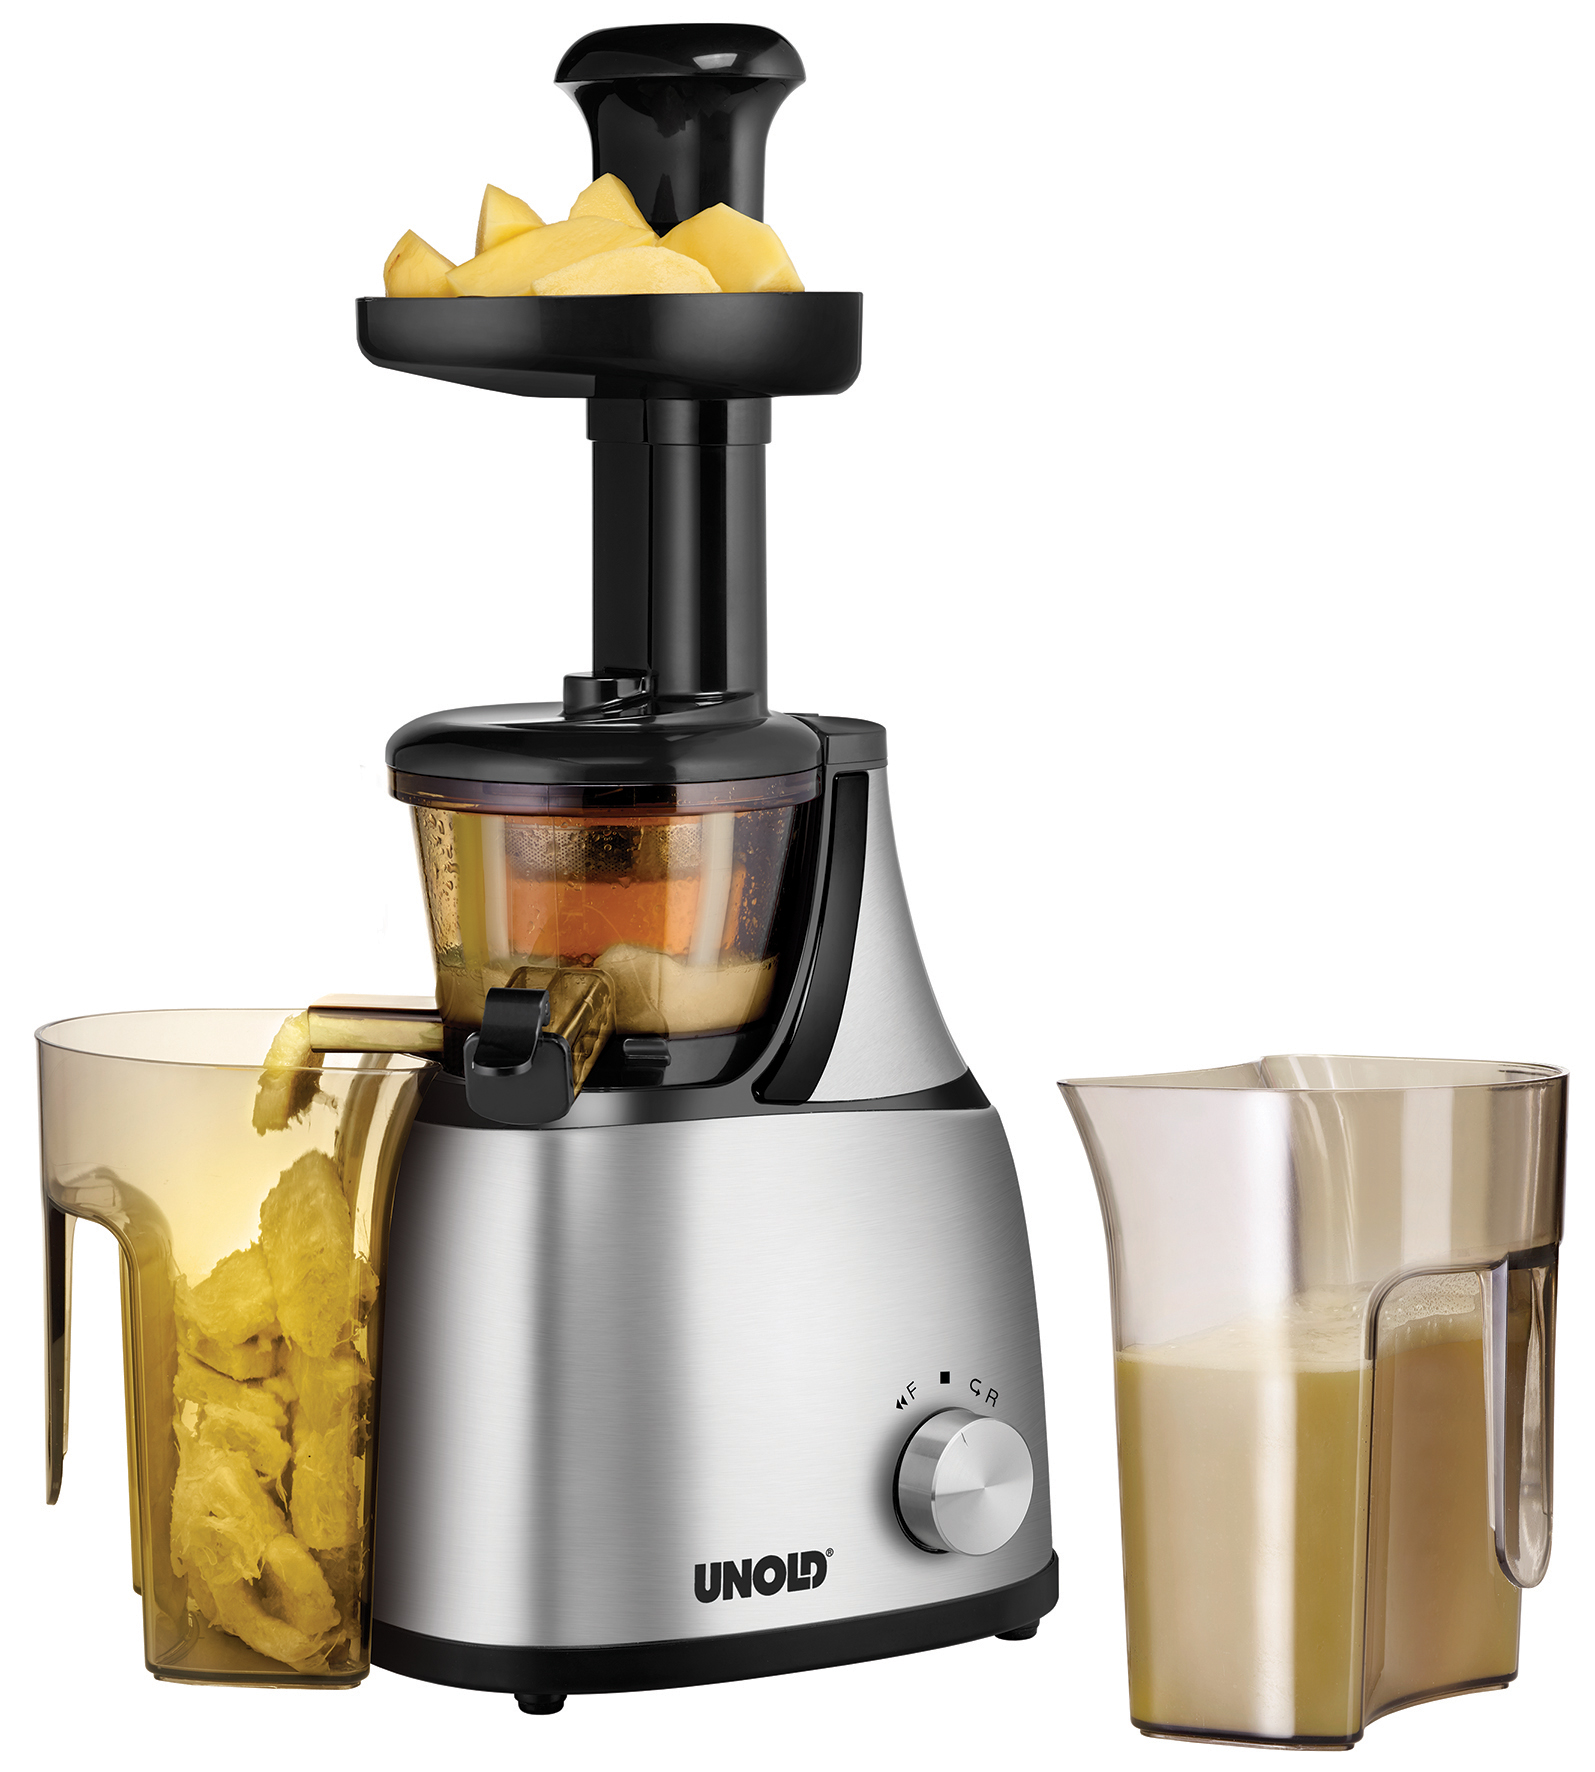 Unold Slow Juicer